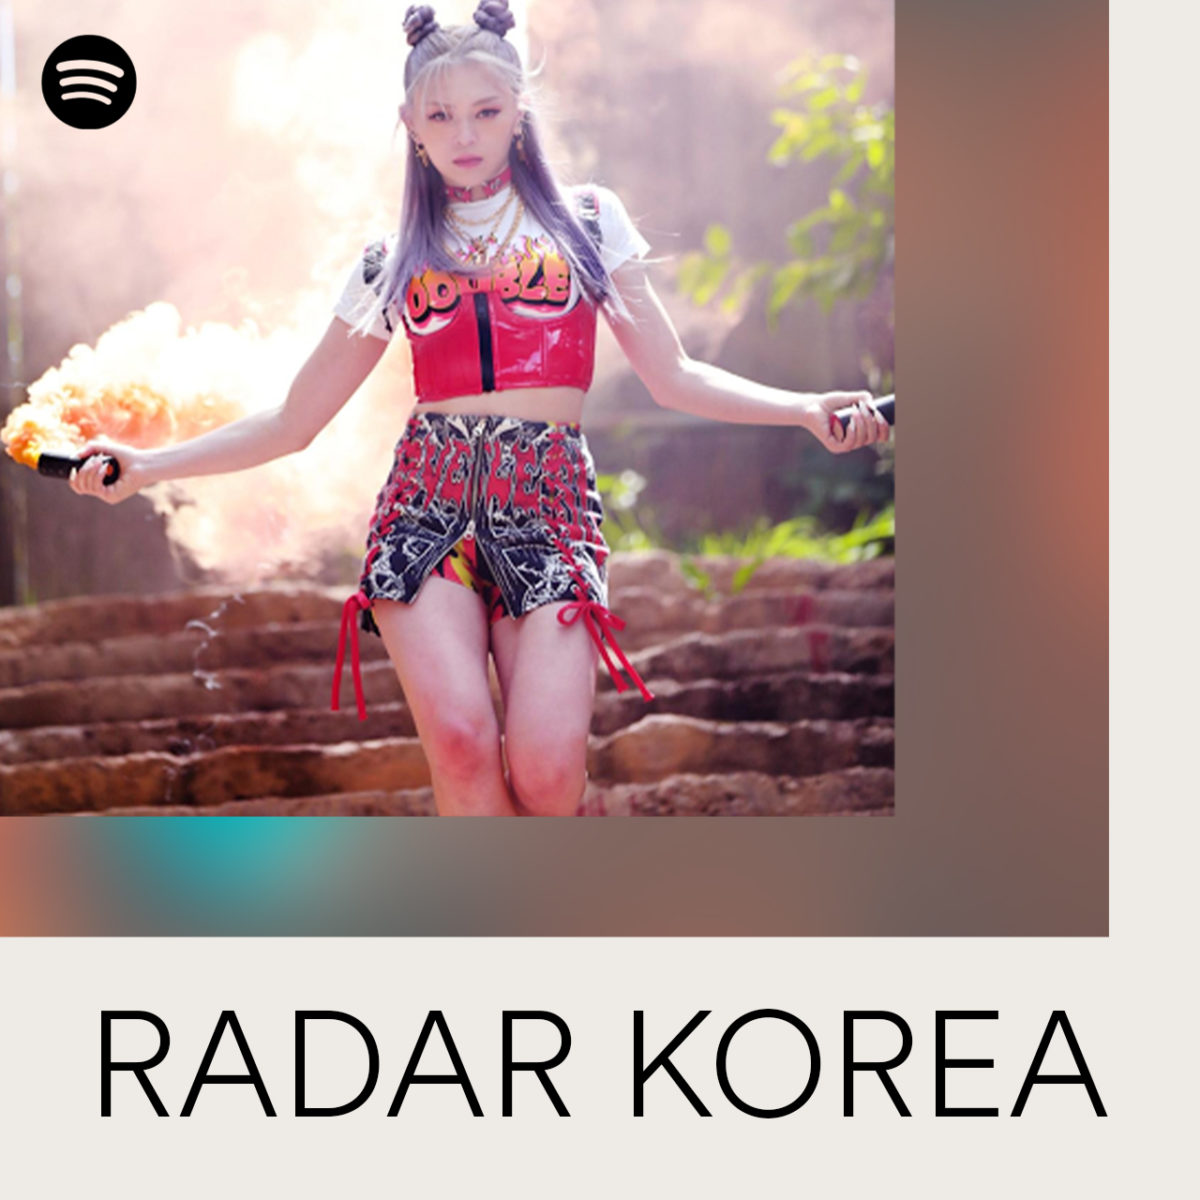 Spotify Launches RADAR Korea to Support Emerging Korean Artists such as AleXa, BIBI, A.C.E and more